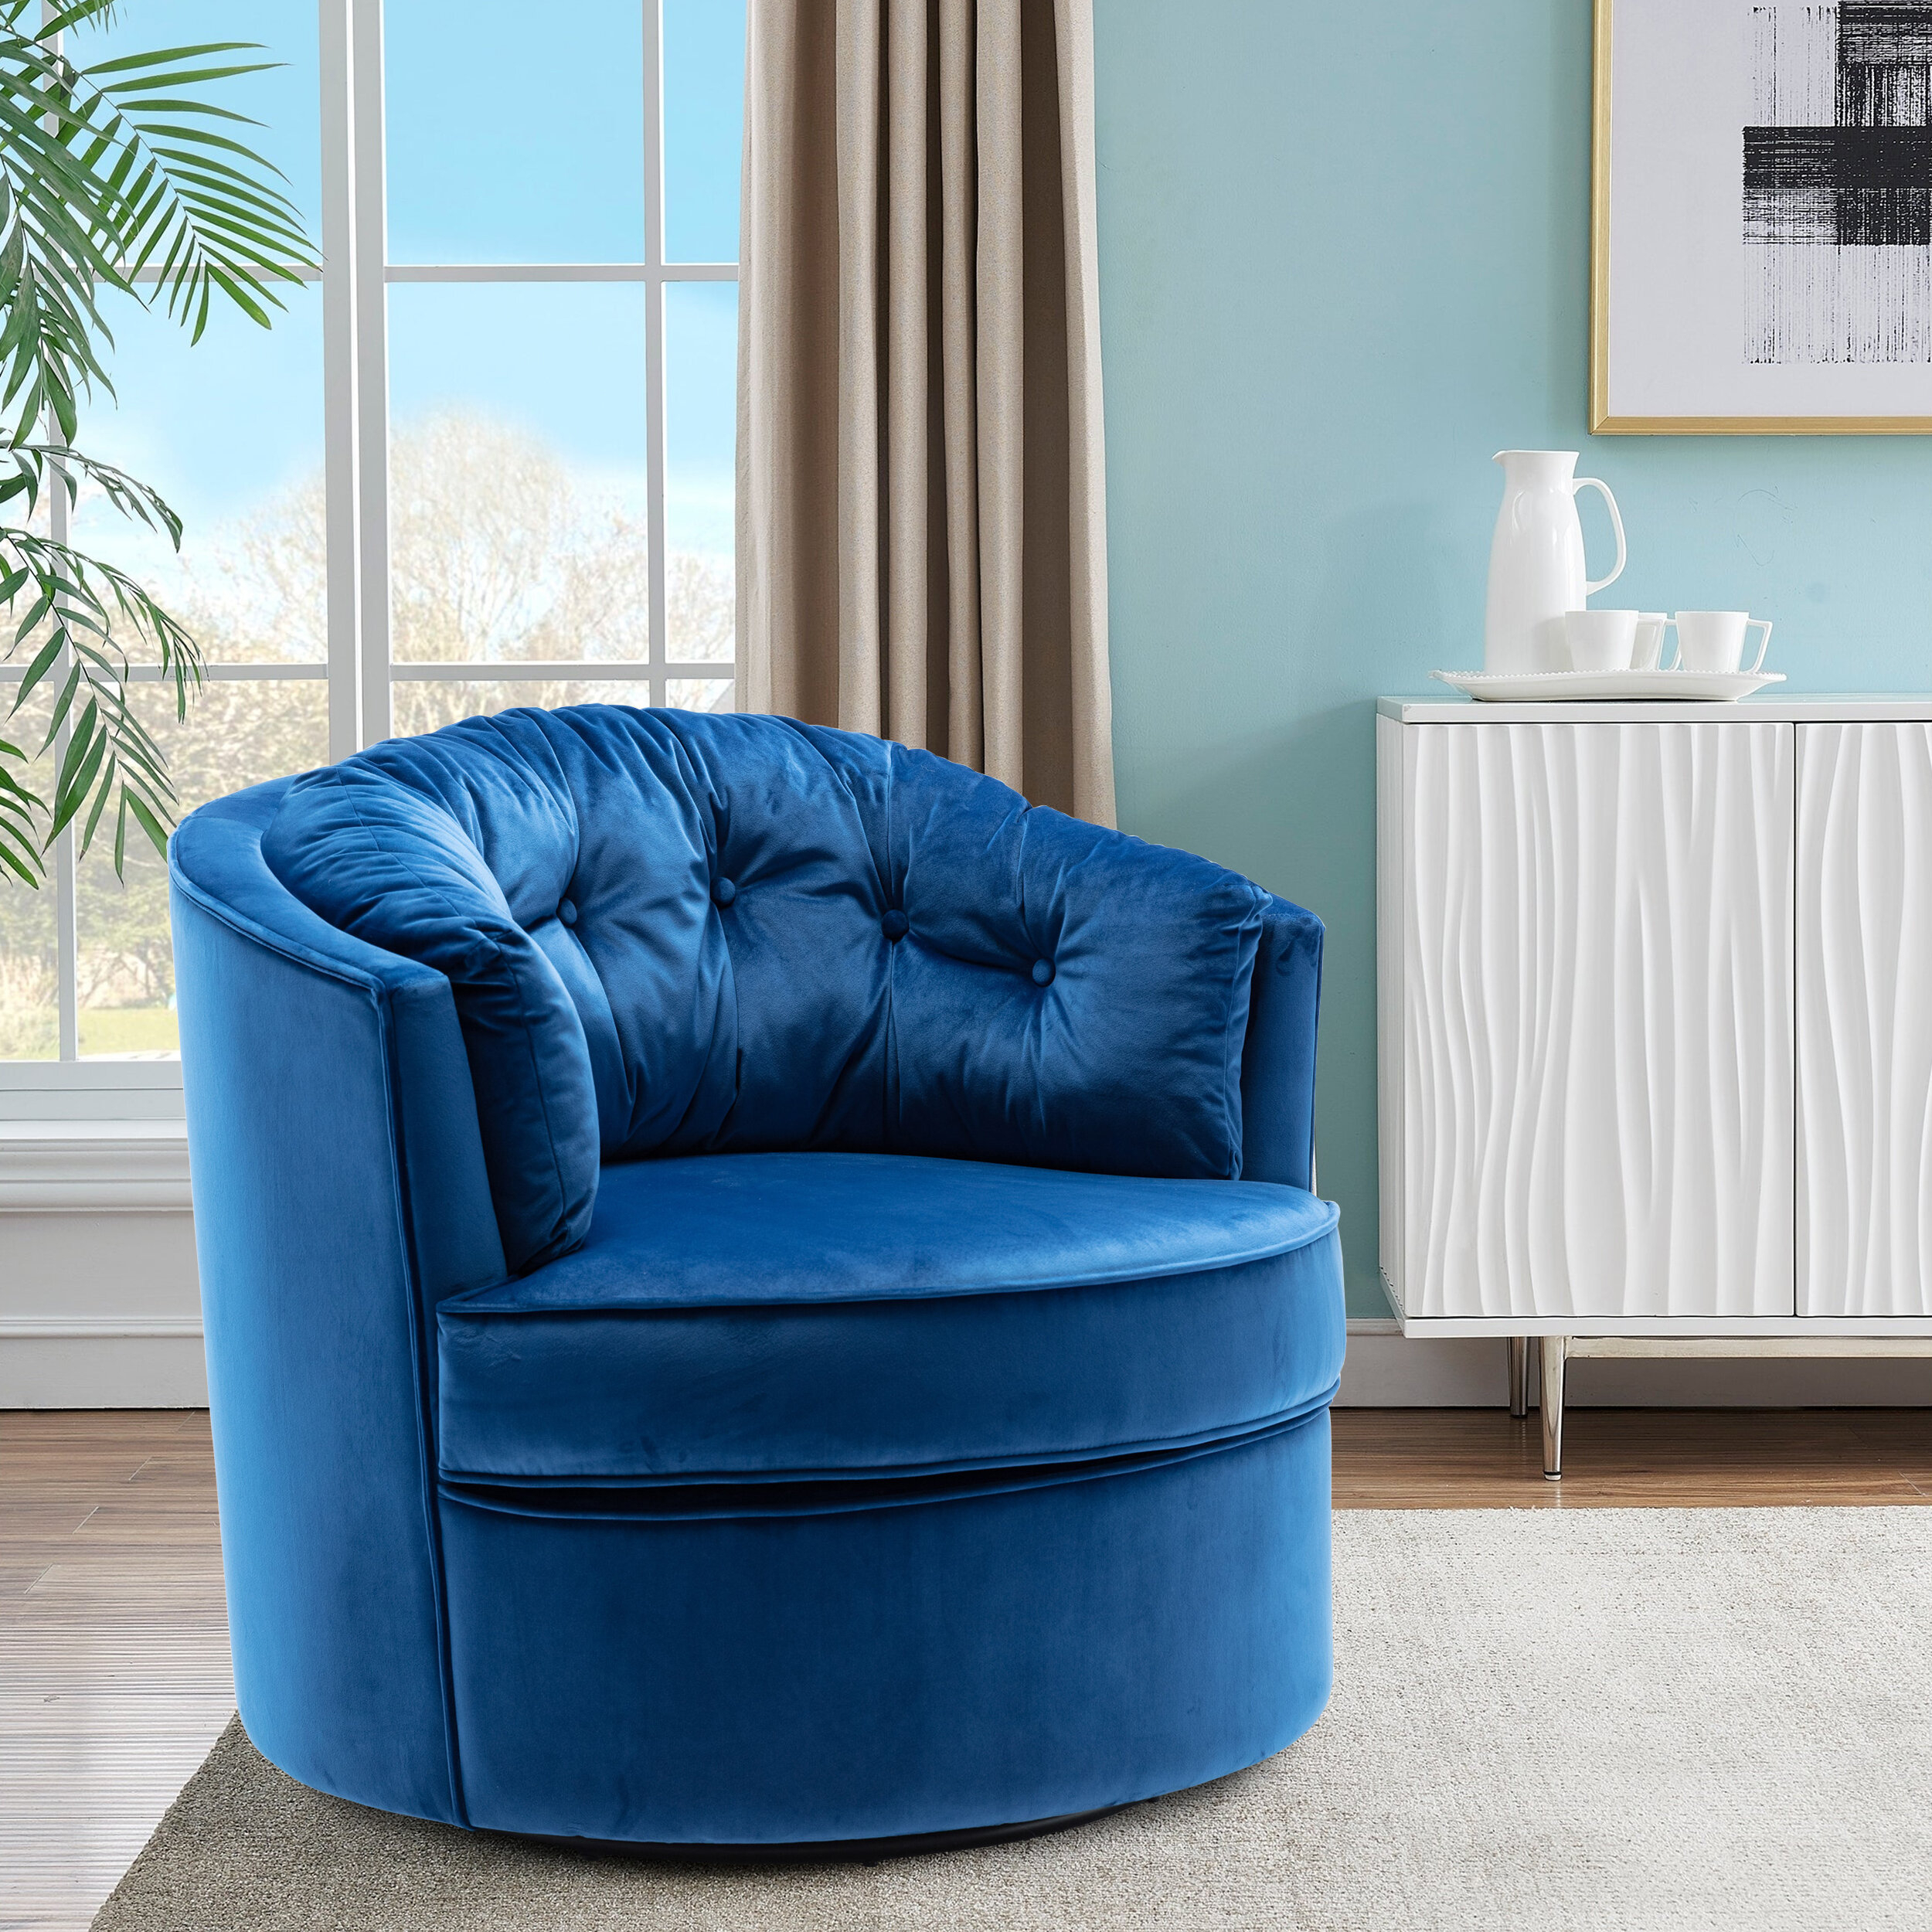 Barrel Accent Chairs On Sale | Wayfair With Regard To Filton Barrel Chairs (View 10 of 15)